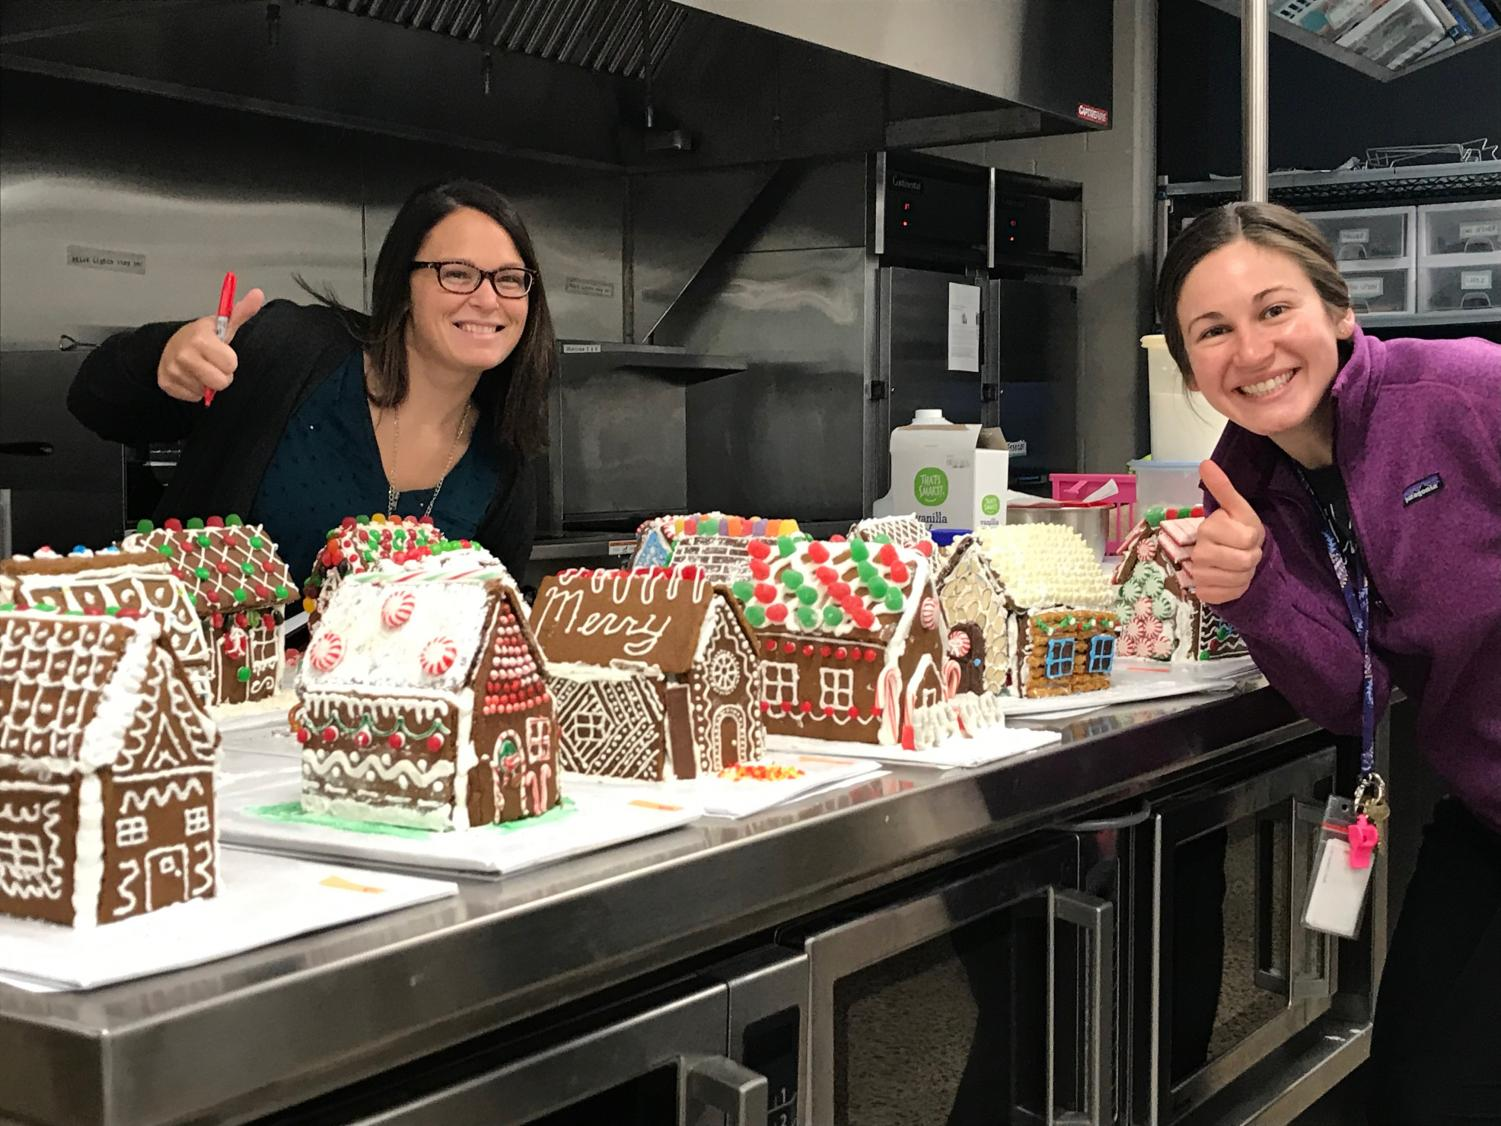 The Pastry and Design class invited teachers to check out the sweet gingerbread houses they created - looking good!